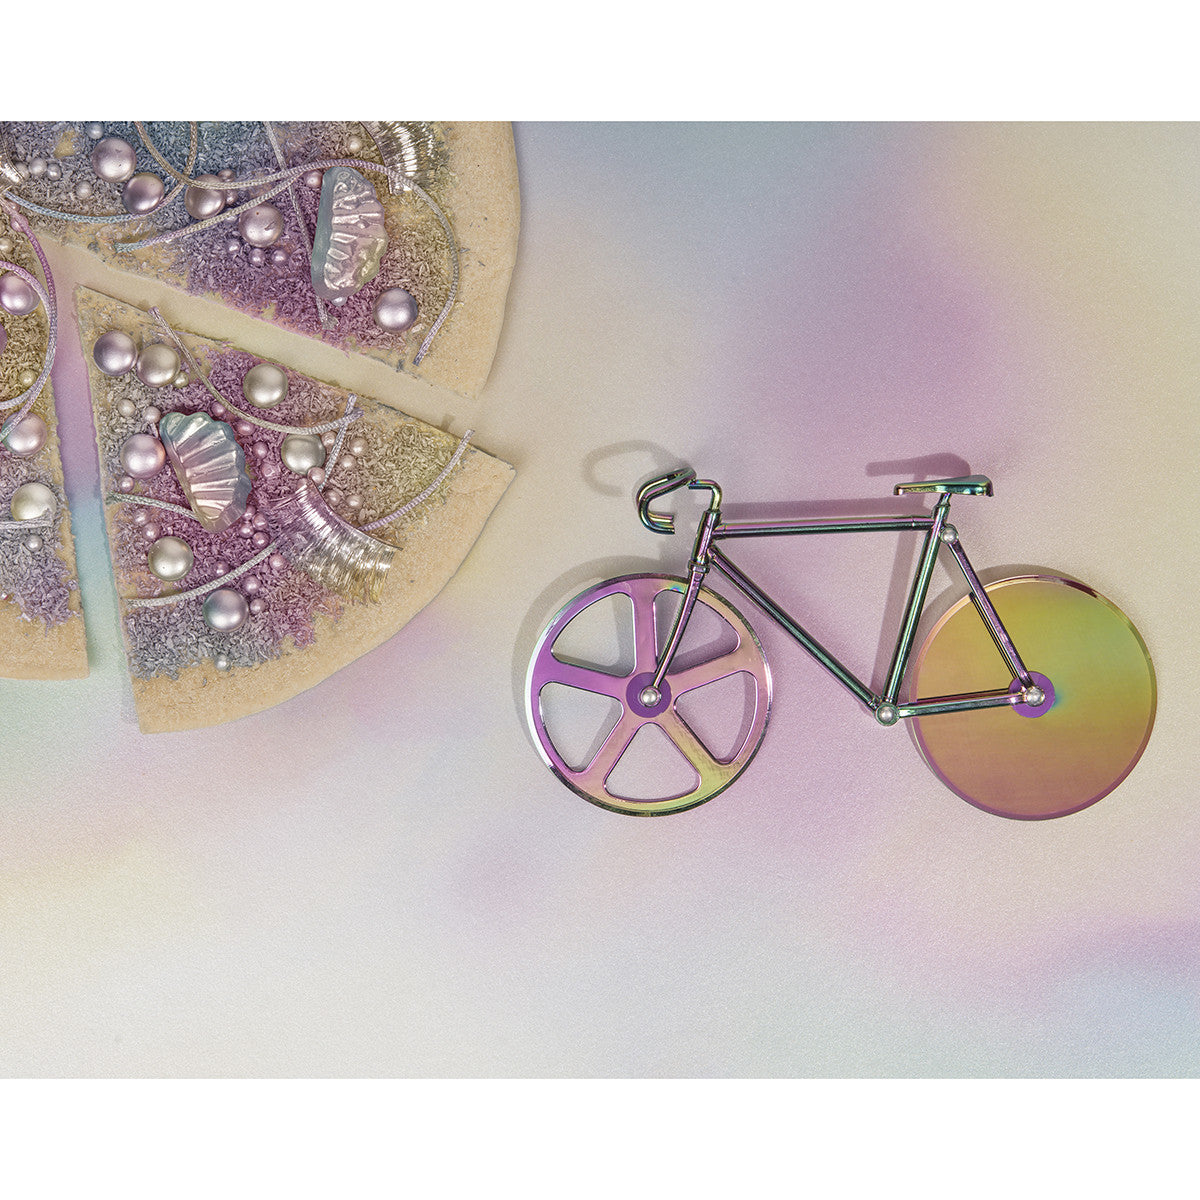 Doiy: The Fixie Metallic - Iridescent